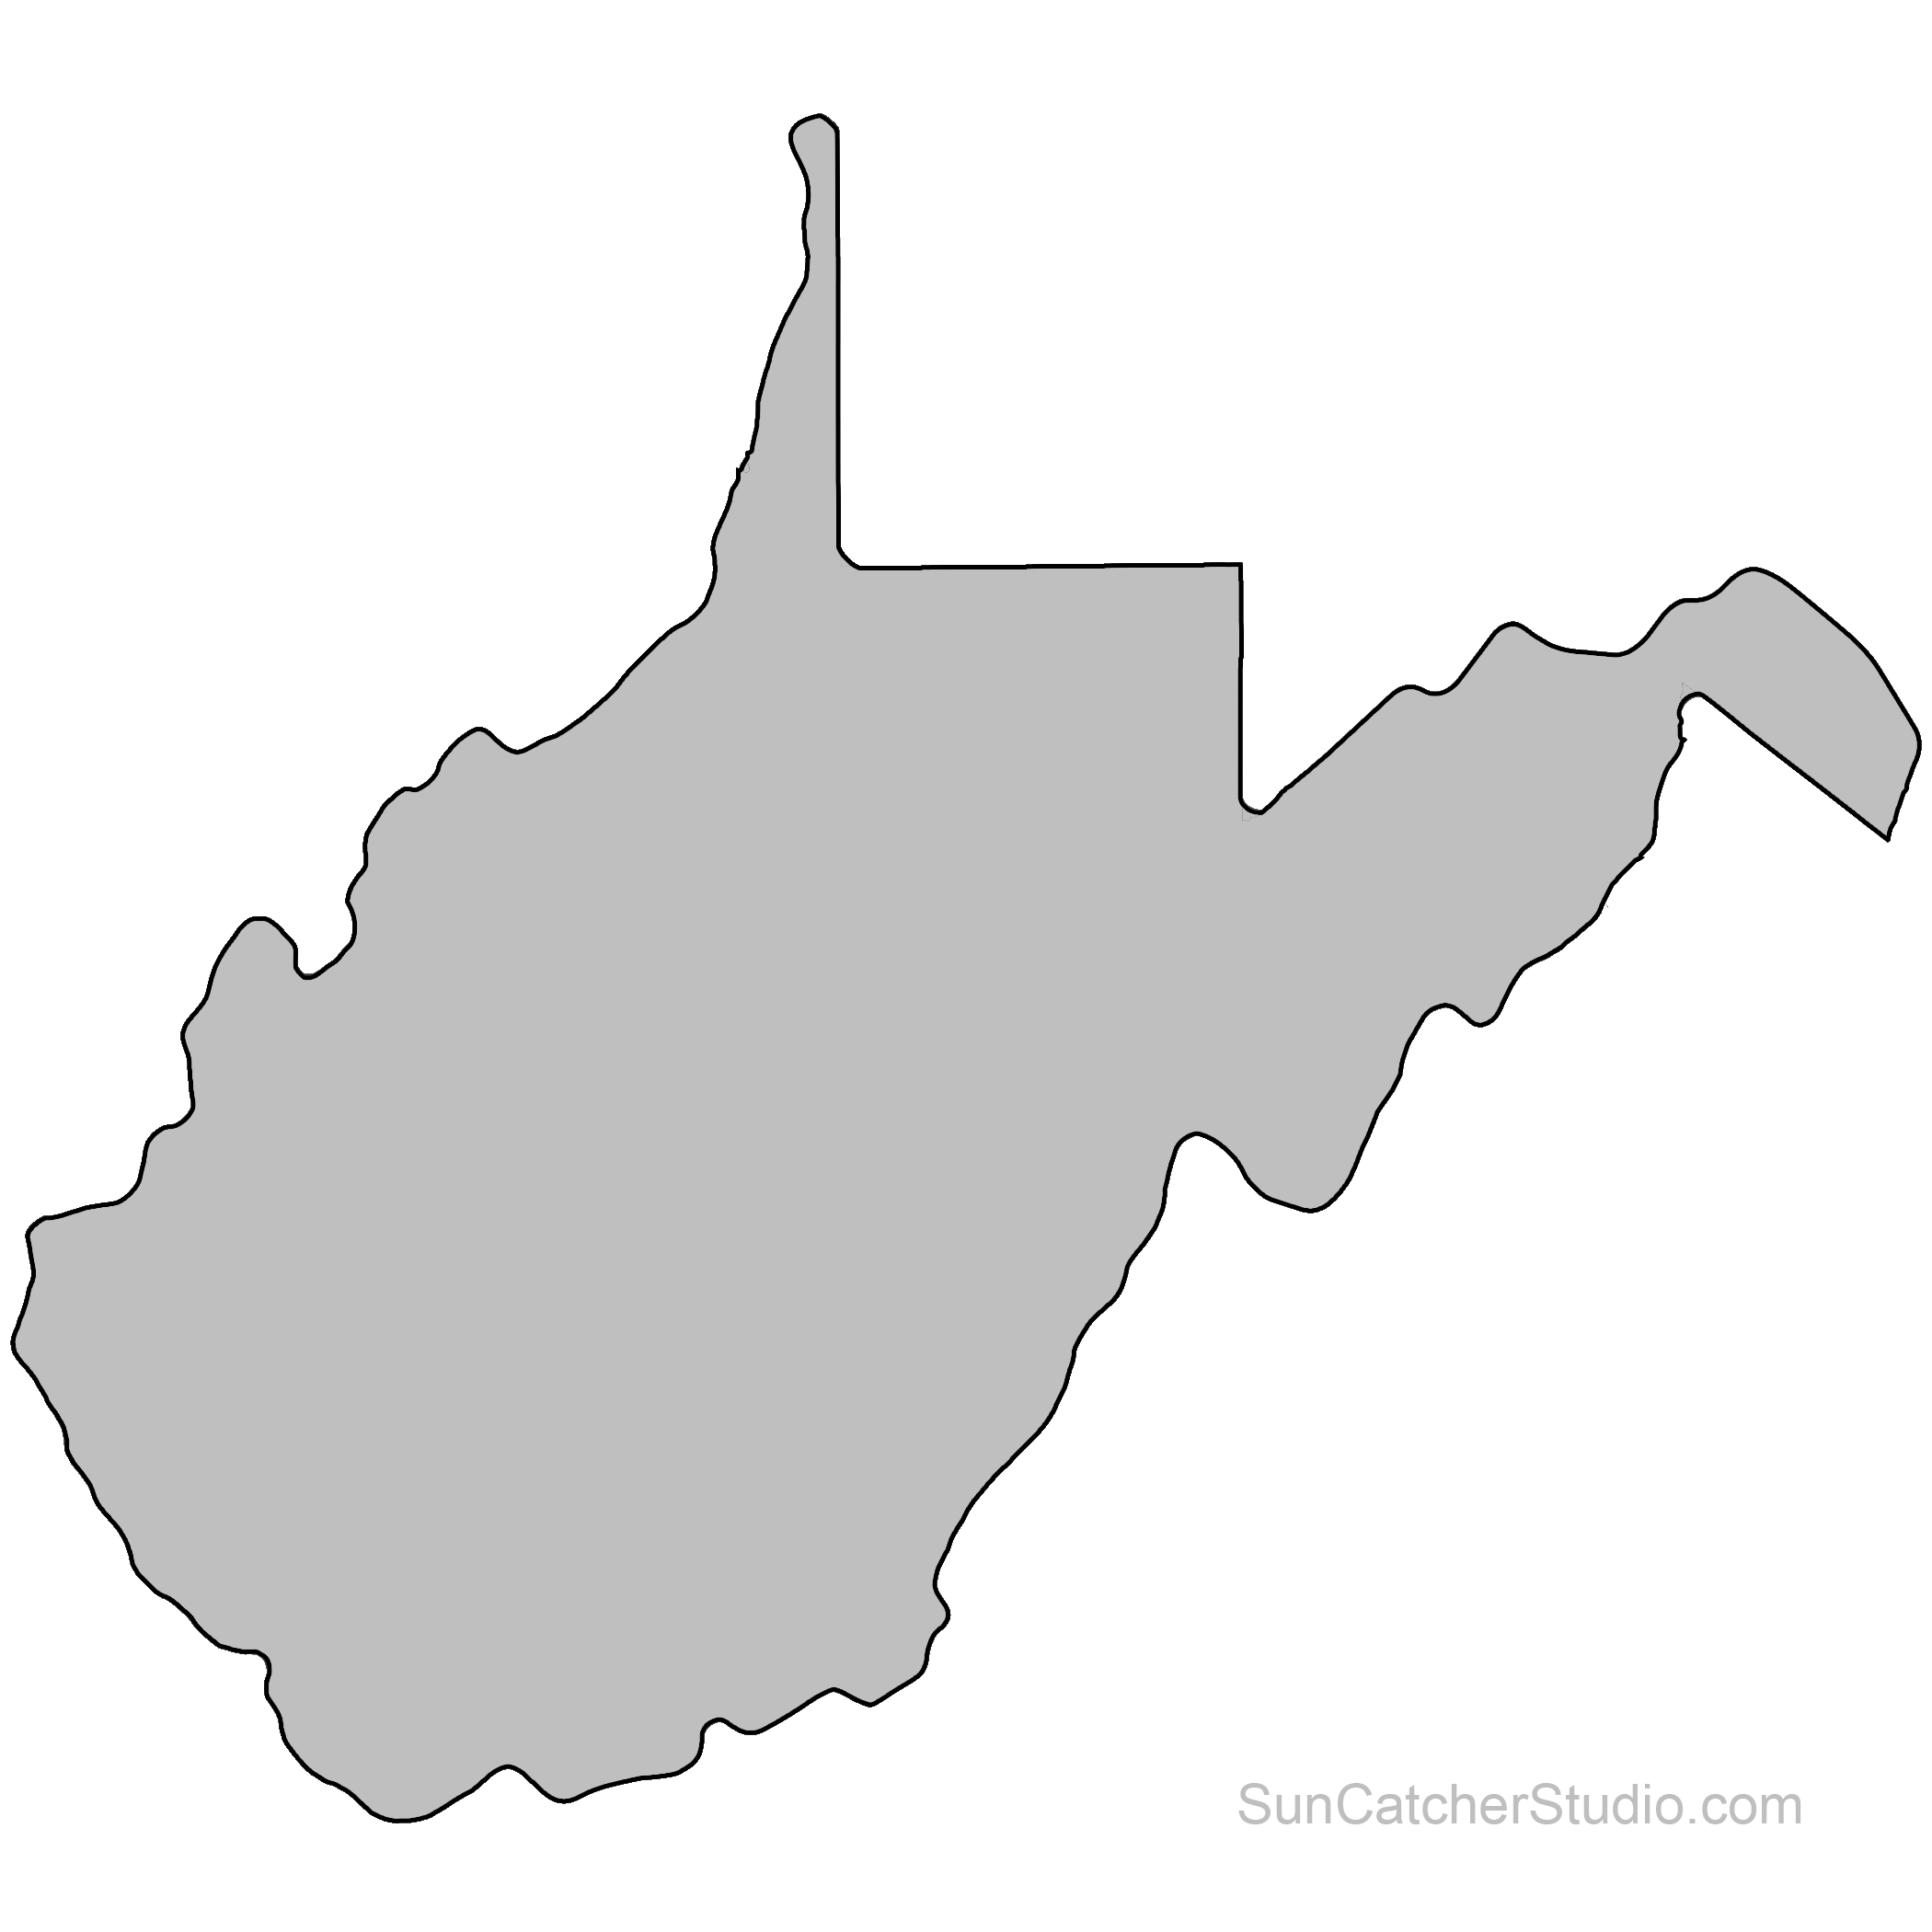 State Outlines, Maps, Stencils, Patterns, Clip Art (All 50.